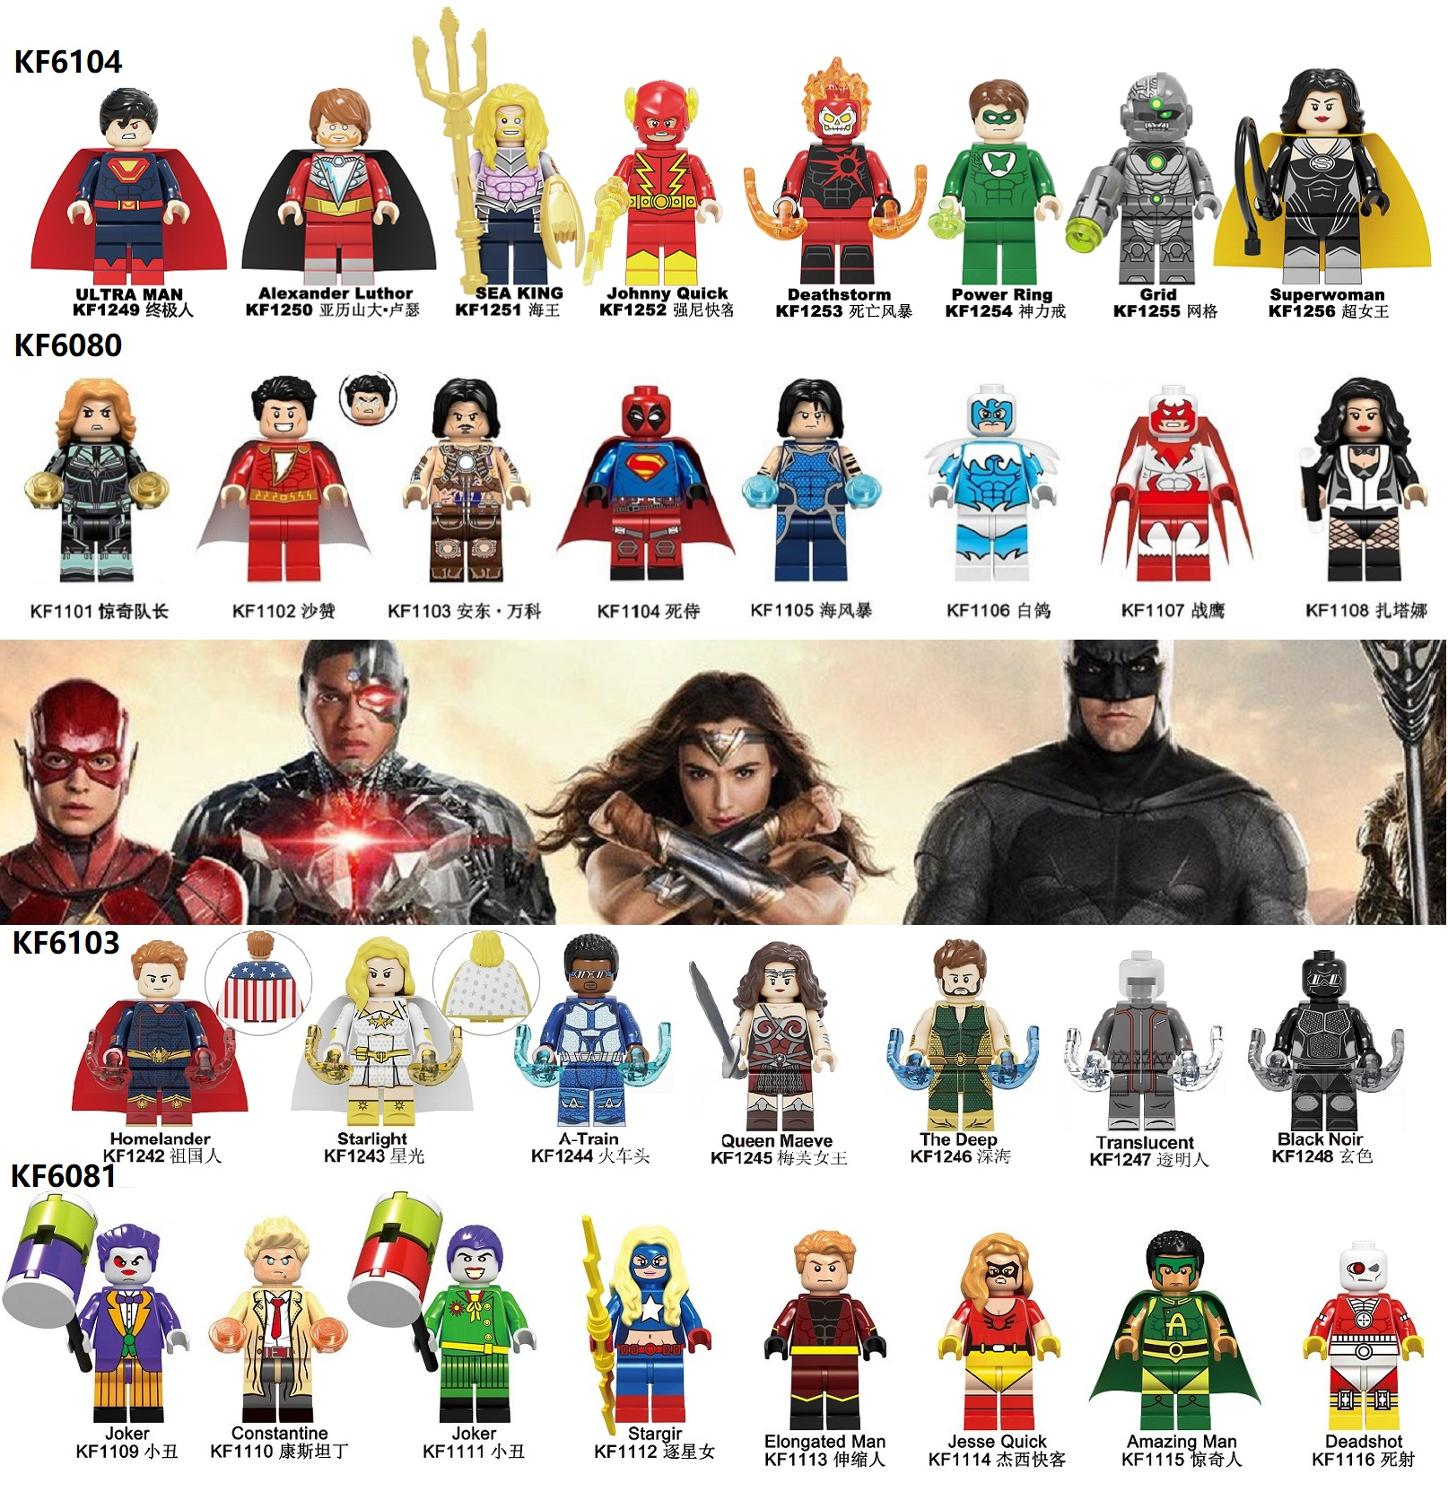 Set Building Blocks DC Movie Crime Syndicate Ultra Man Alexander Luthor Sea King Johnny Quick Aquaman Figures Toys Kids KF6104 image